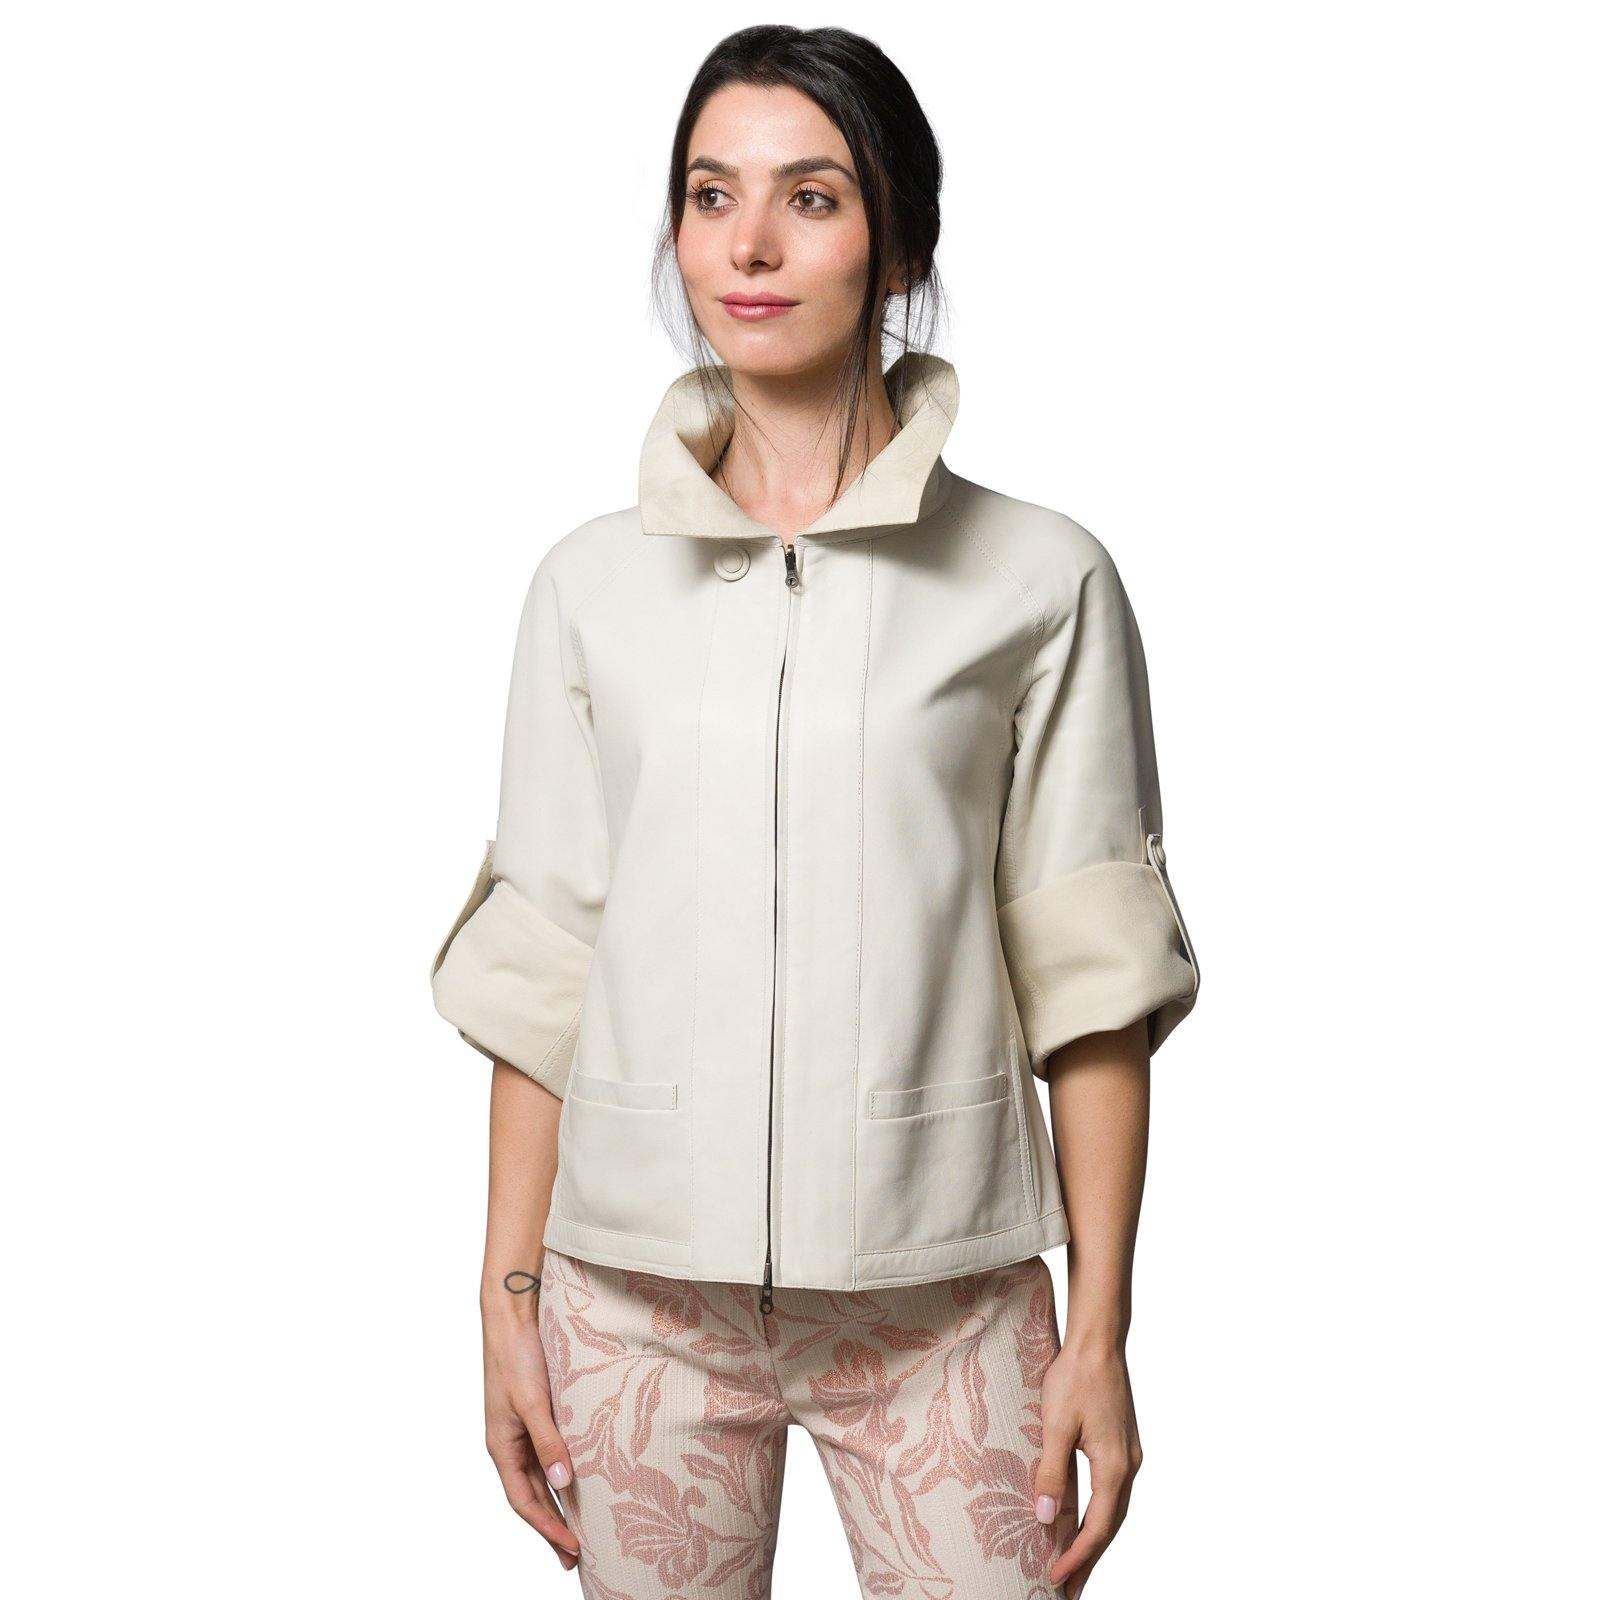 Audrey Reversible Pieno Fiore Leather Jacket in Ice